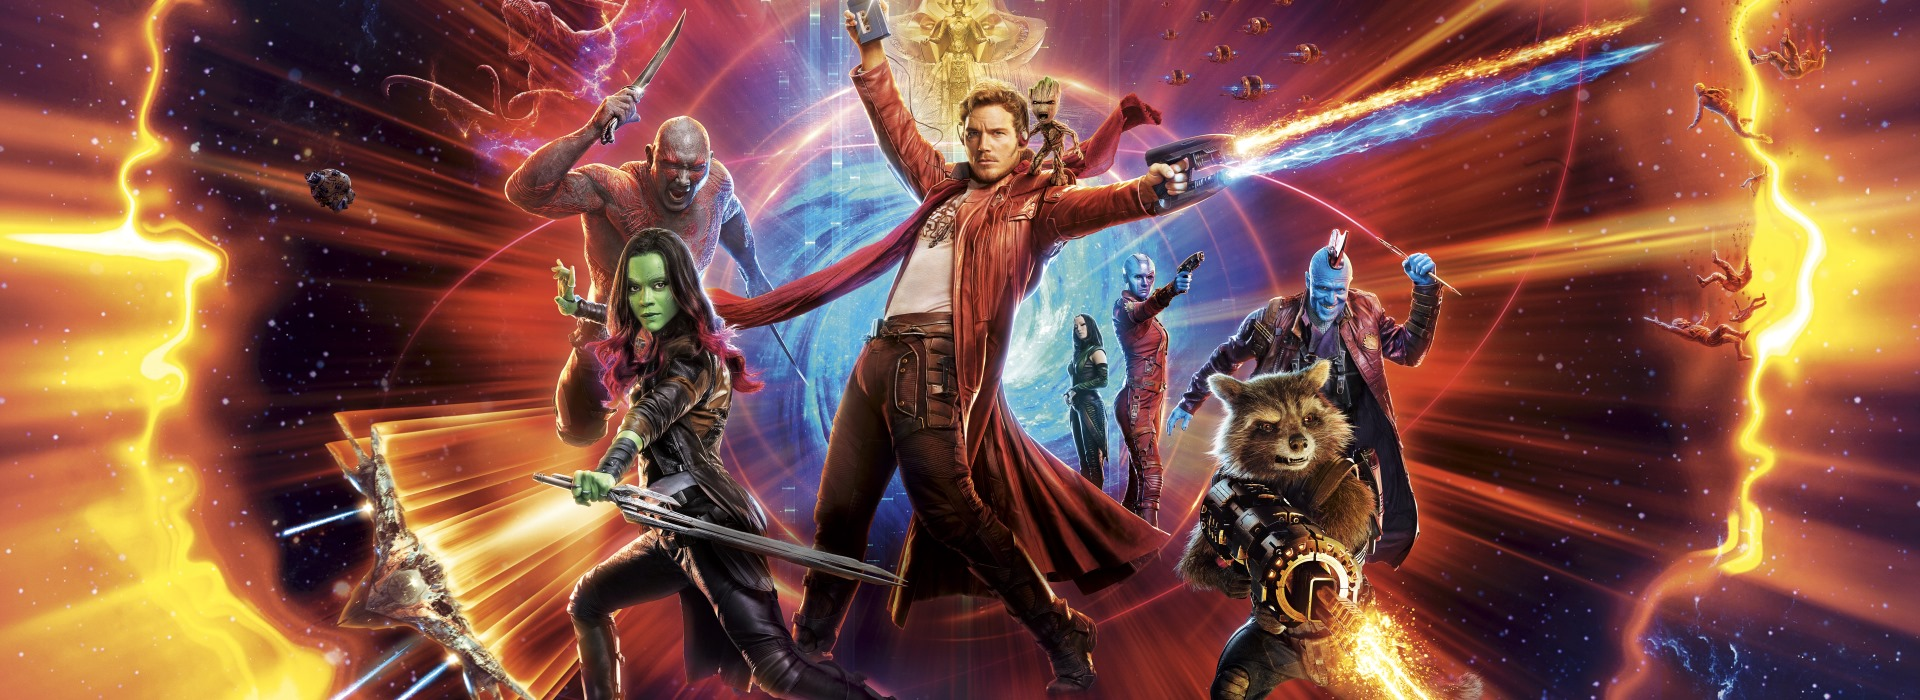 Guardians of the Galaxy Vol. 2 [Blu-Ray] cover